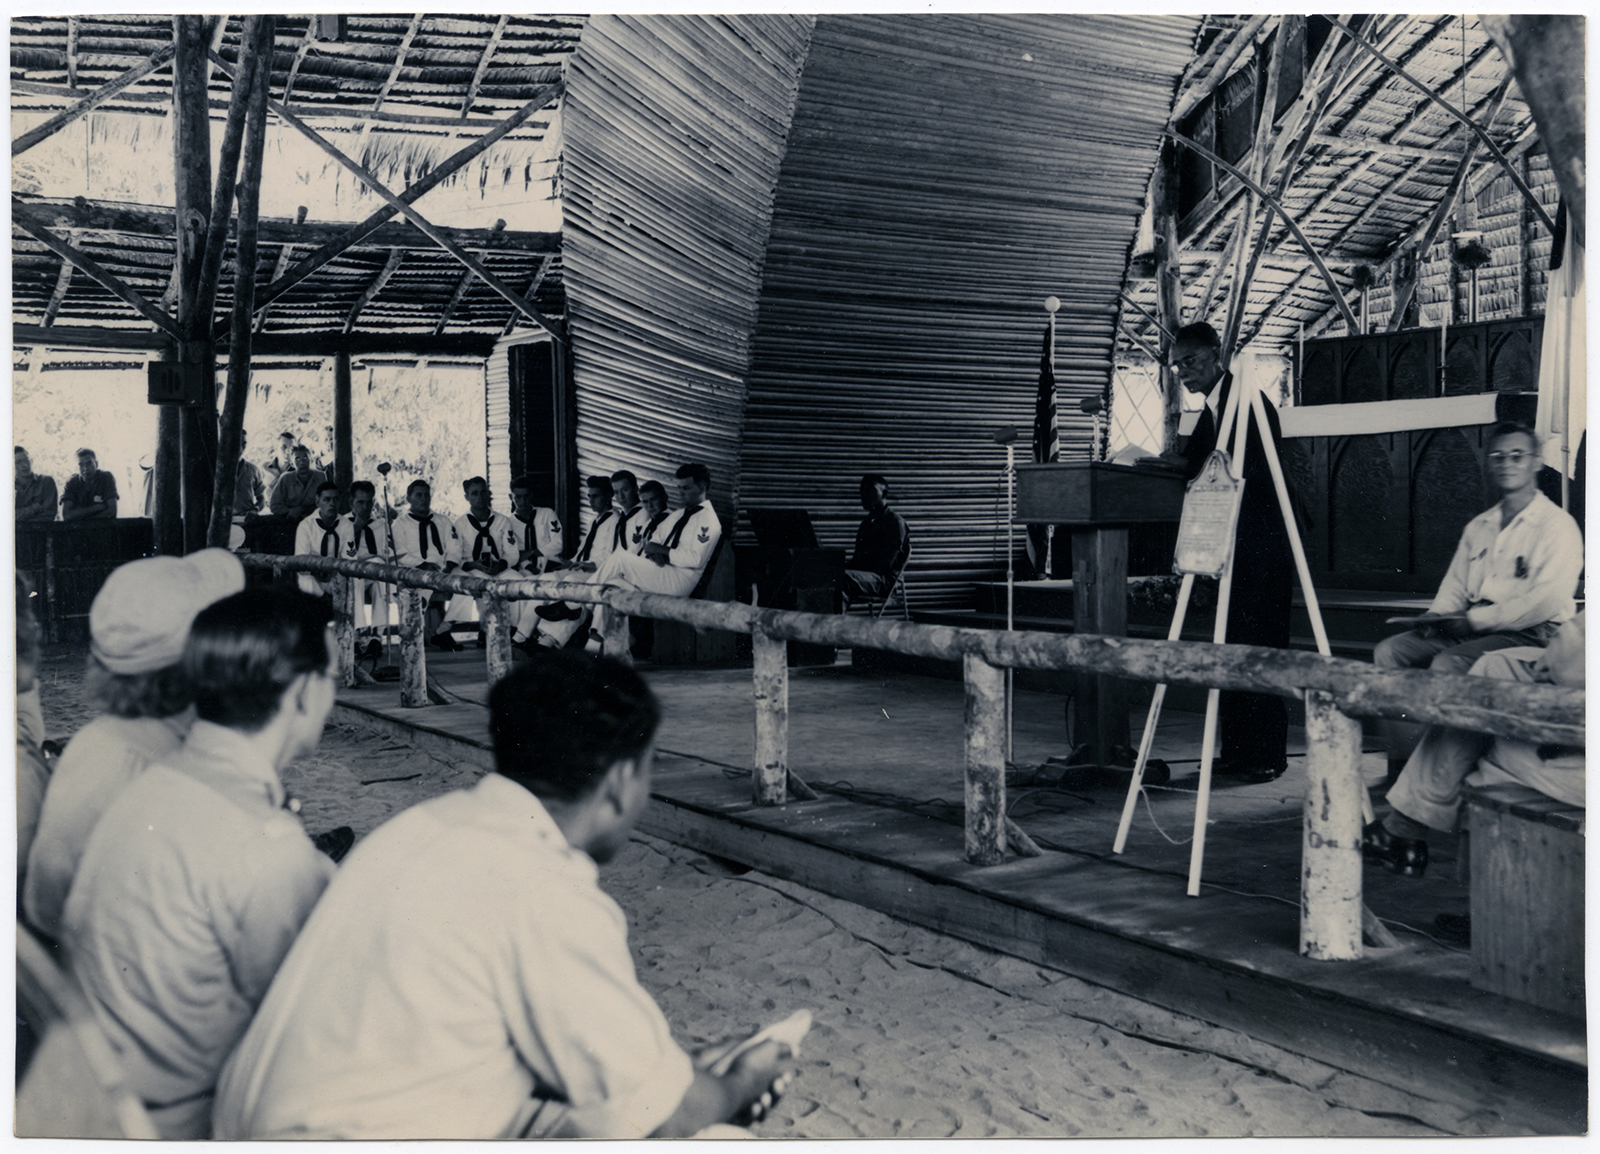 American sailors, far left, attend a service in a typical Protestant Bamboo Church in Port Moresby, the capital and largest city of Papua New Guinea, circa 1948. RNS archive photo. Photo courtesy of the Presbyterian Historical Society.